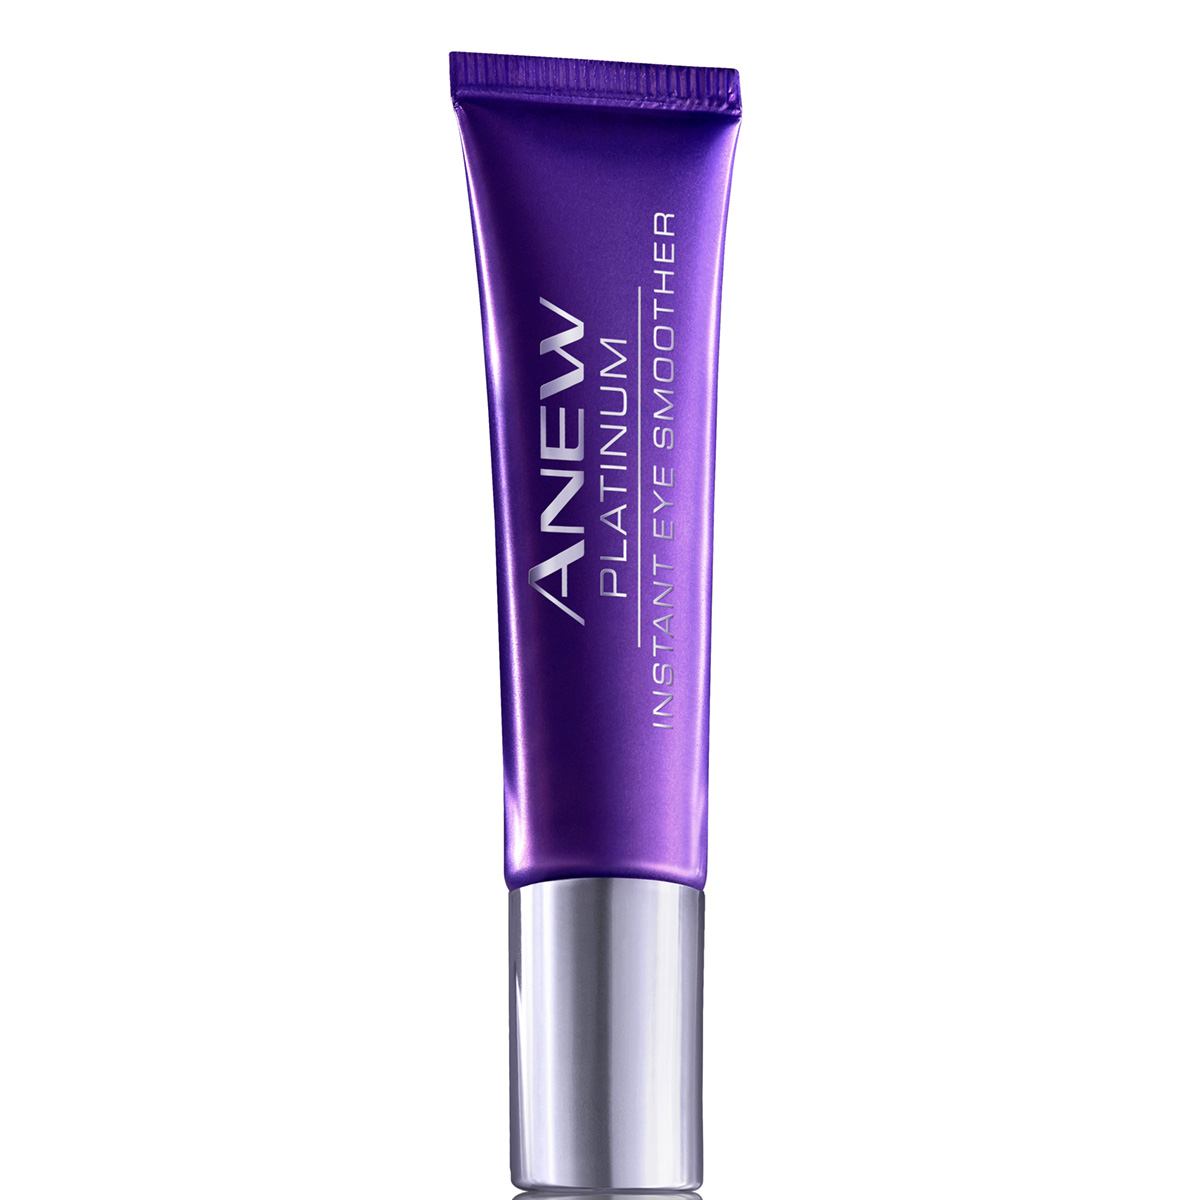 Anew Instant Eye Smoother by AVON - 10256